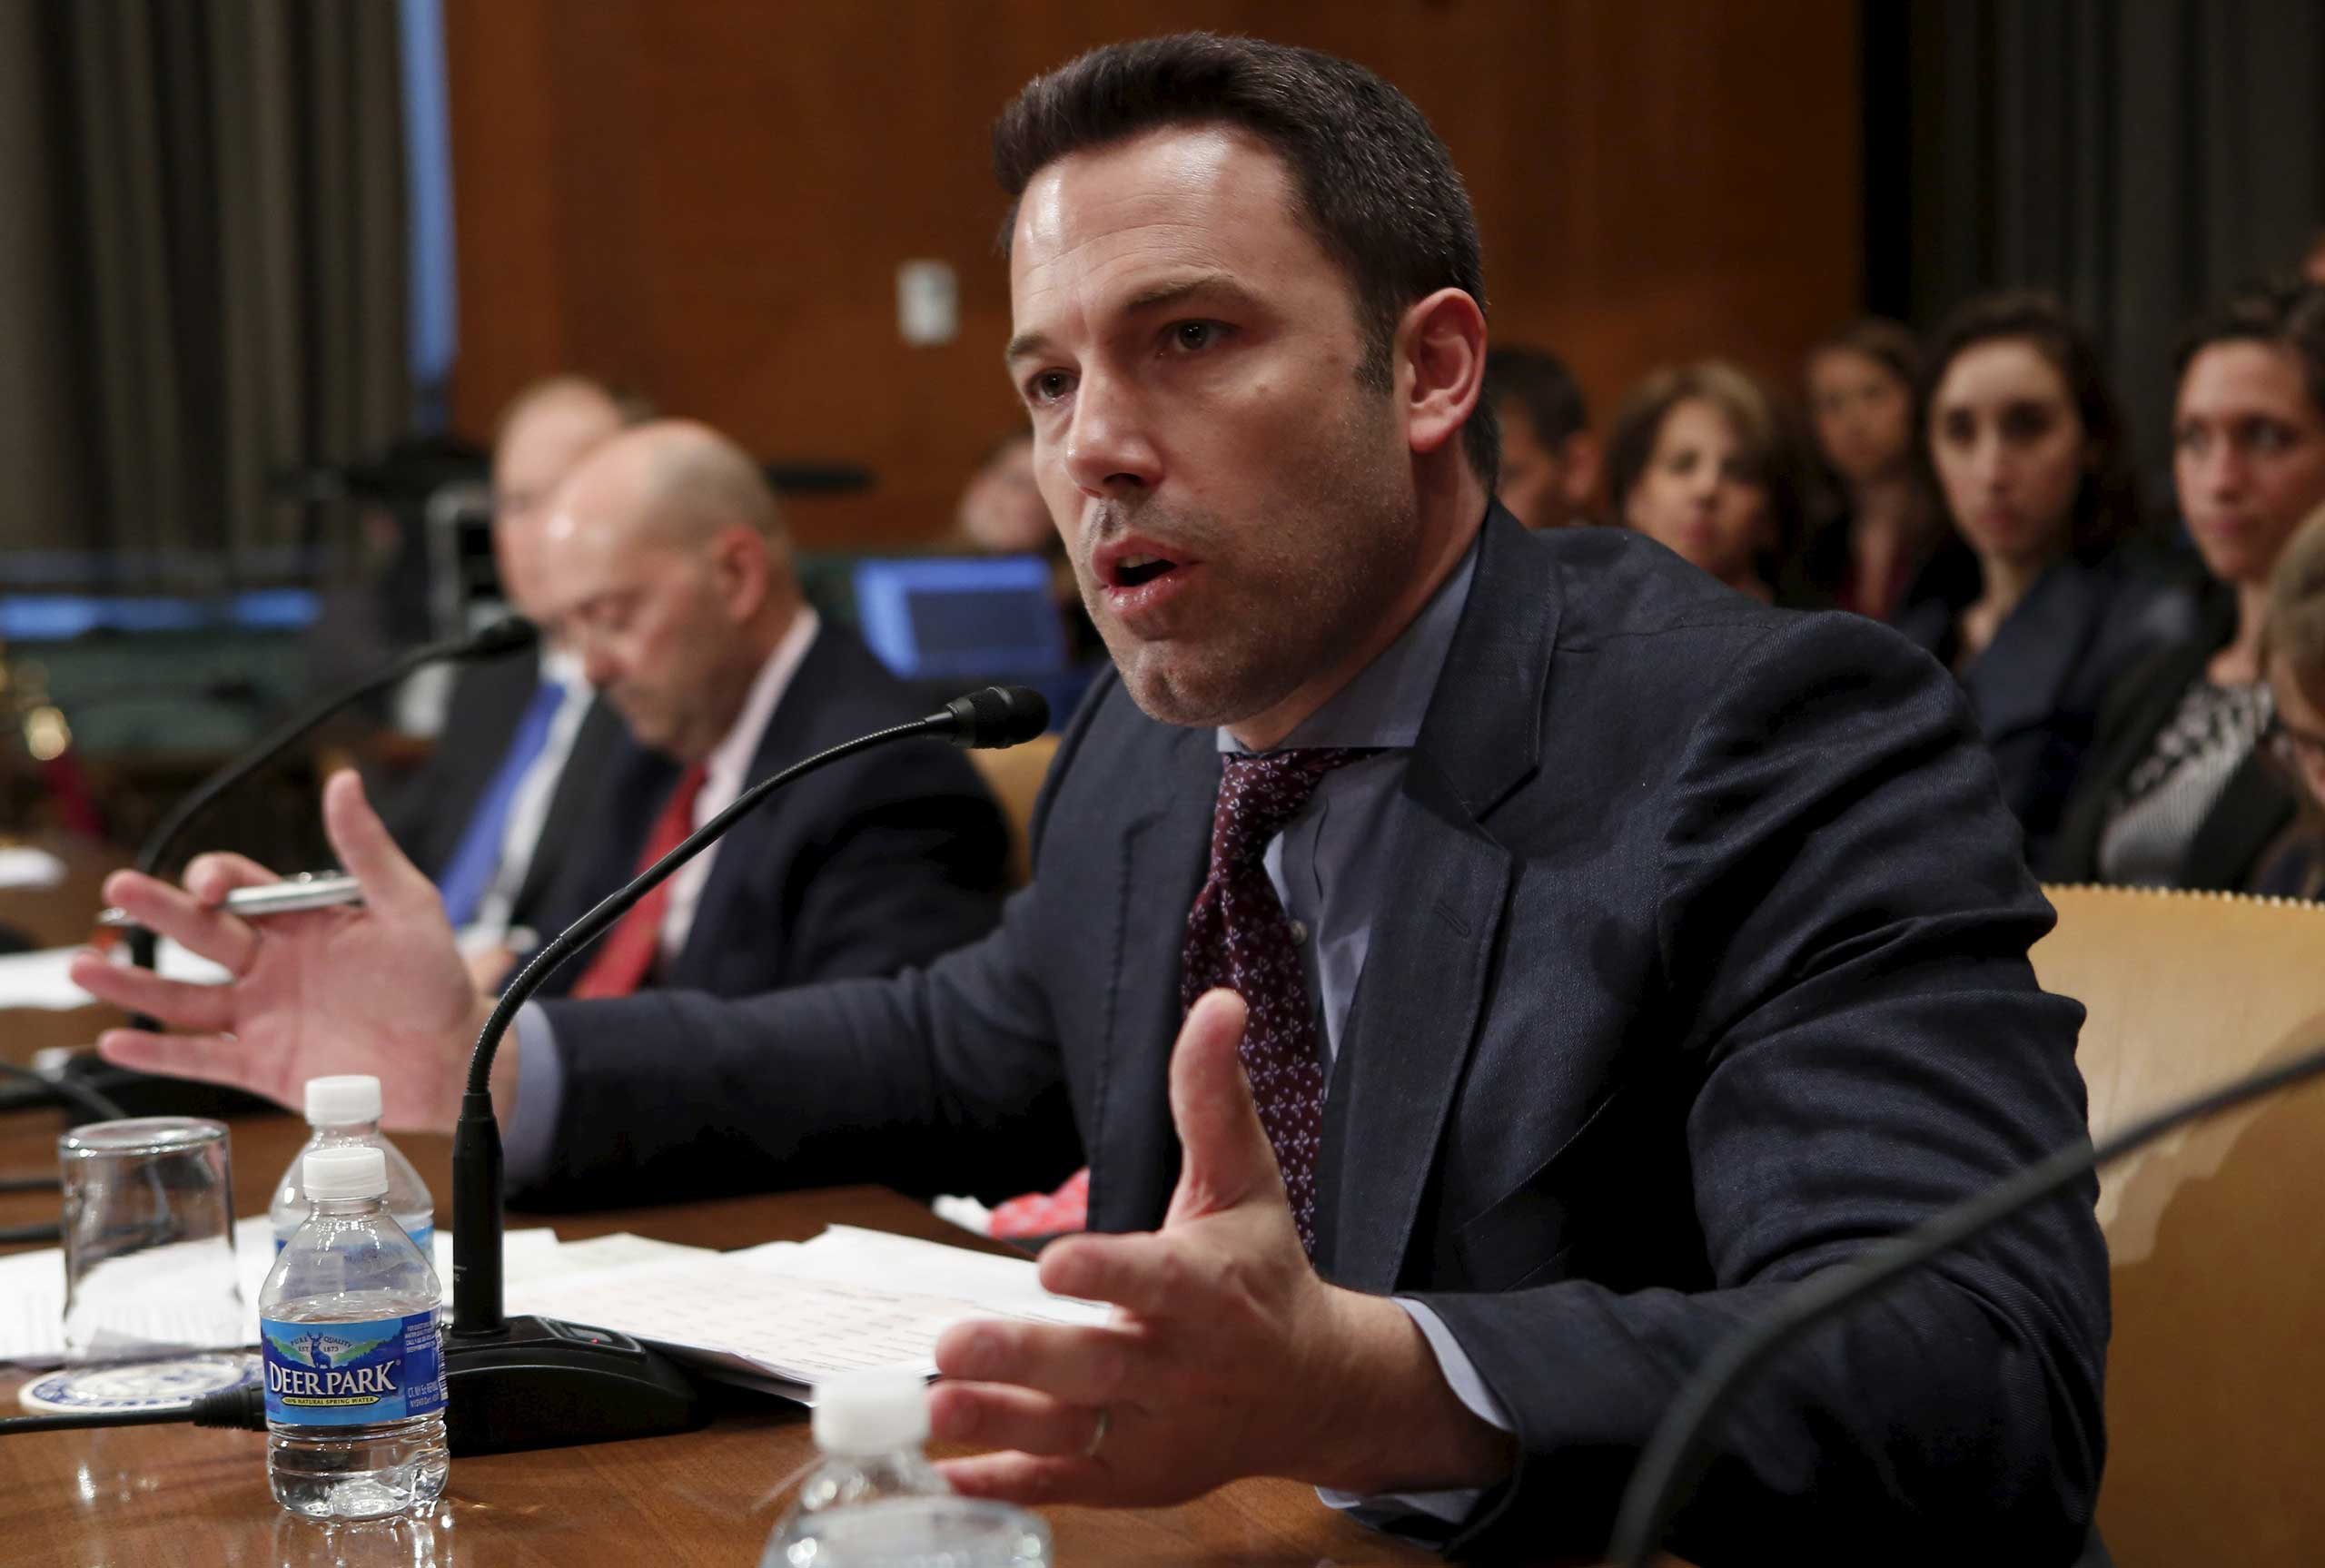 Ben Affleck, actor, filmmaker and founder of the Eastern Congo Initiative, testifies before a Senate Appropriations State, Foreign Operations and Related Programs Subcommittee hearing on  Diplomacy, Development, and National Security  on Capitol Hill in Washington March 26, 2015.